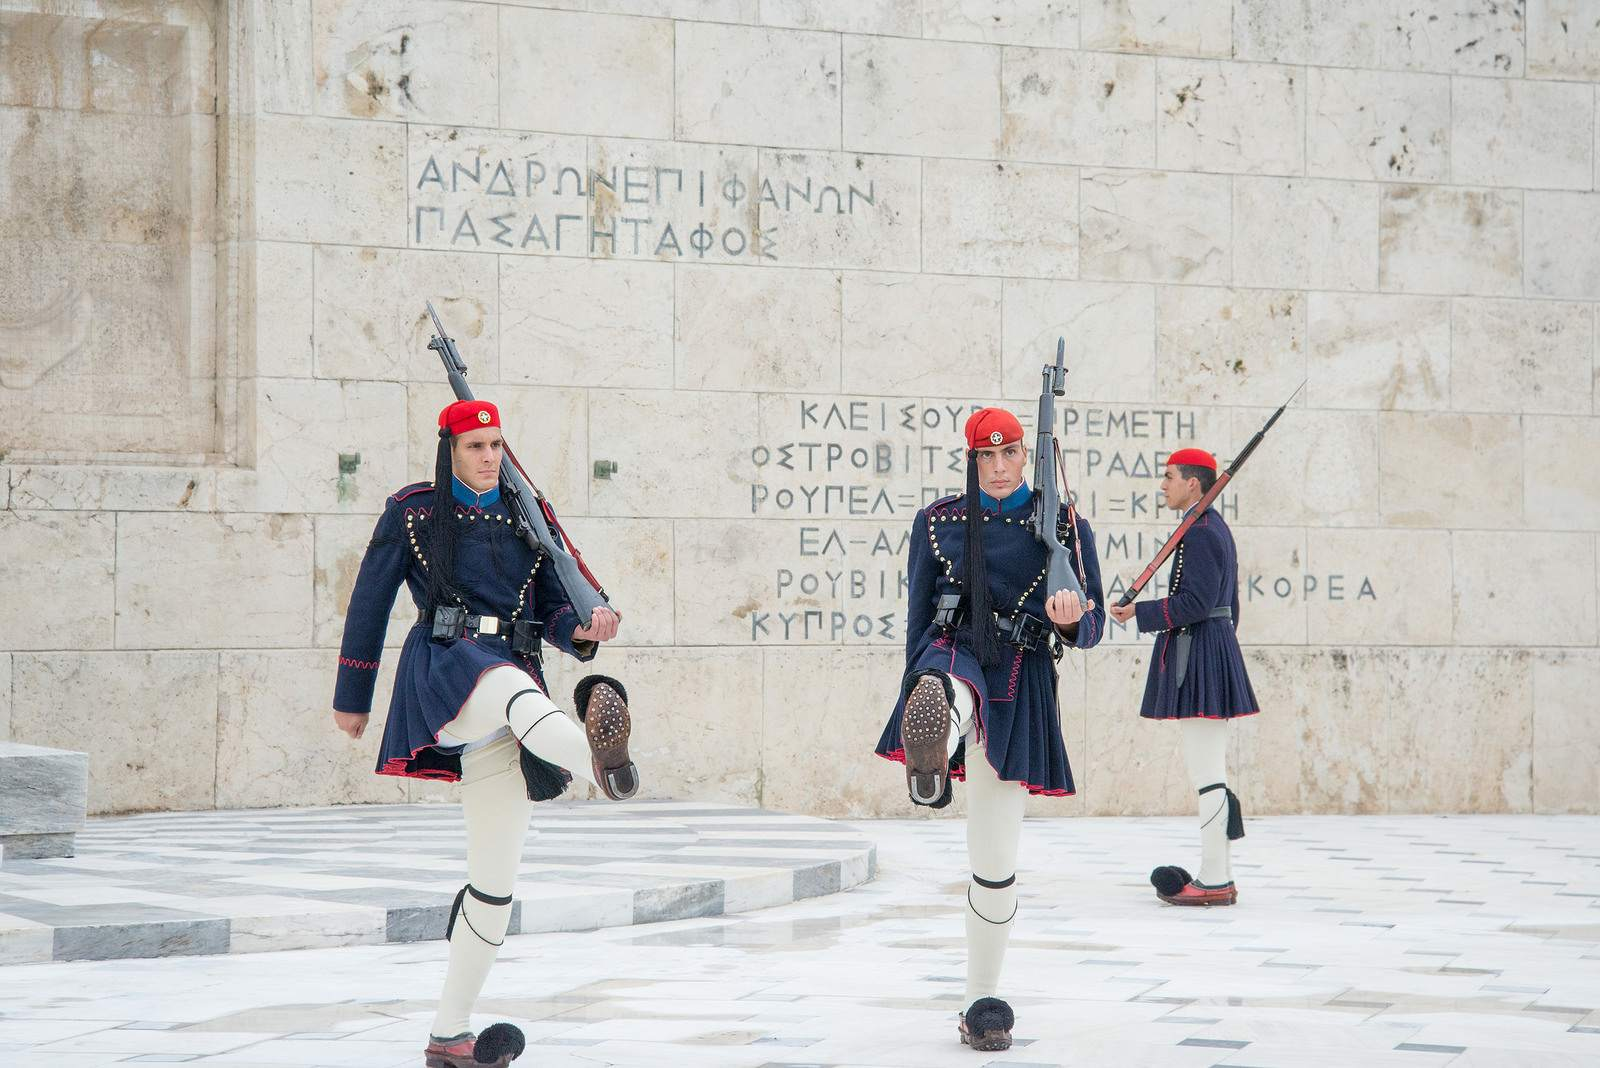 changing guards The Changing of Guards in Athens